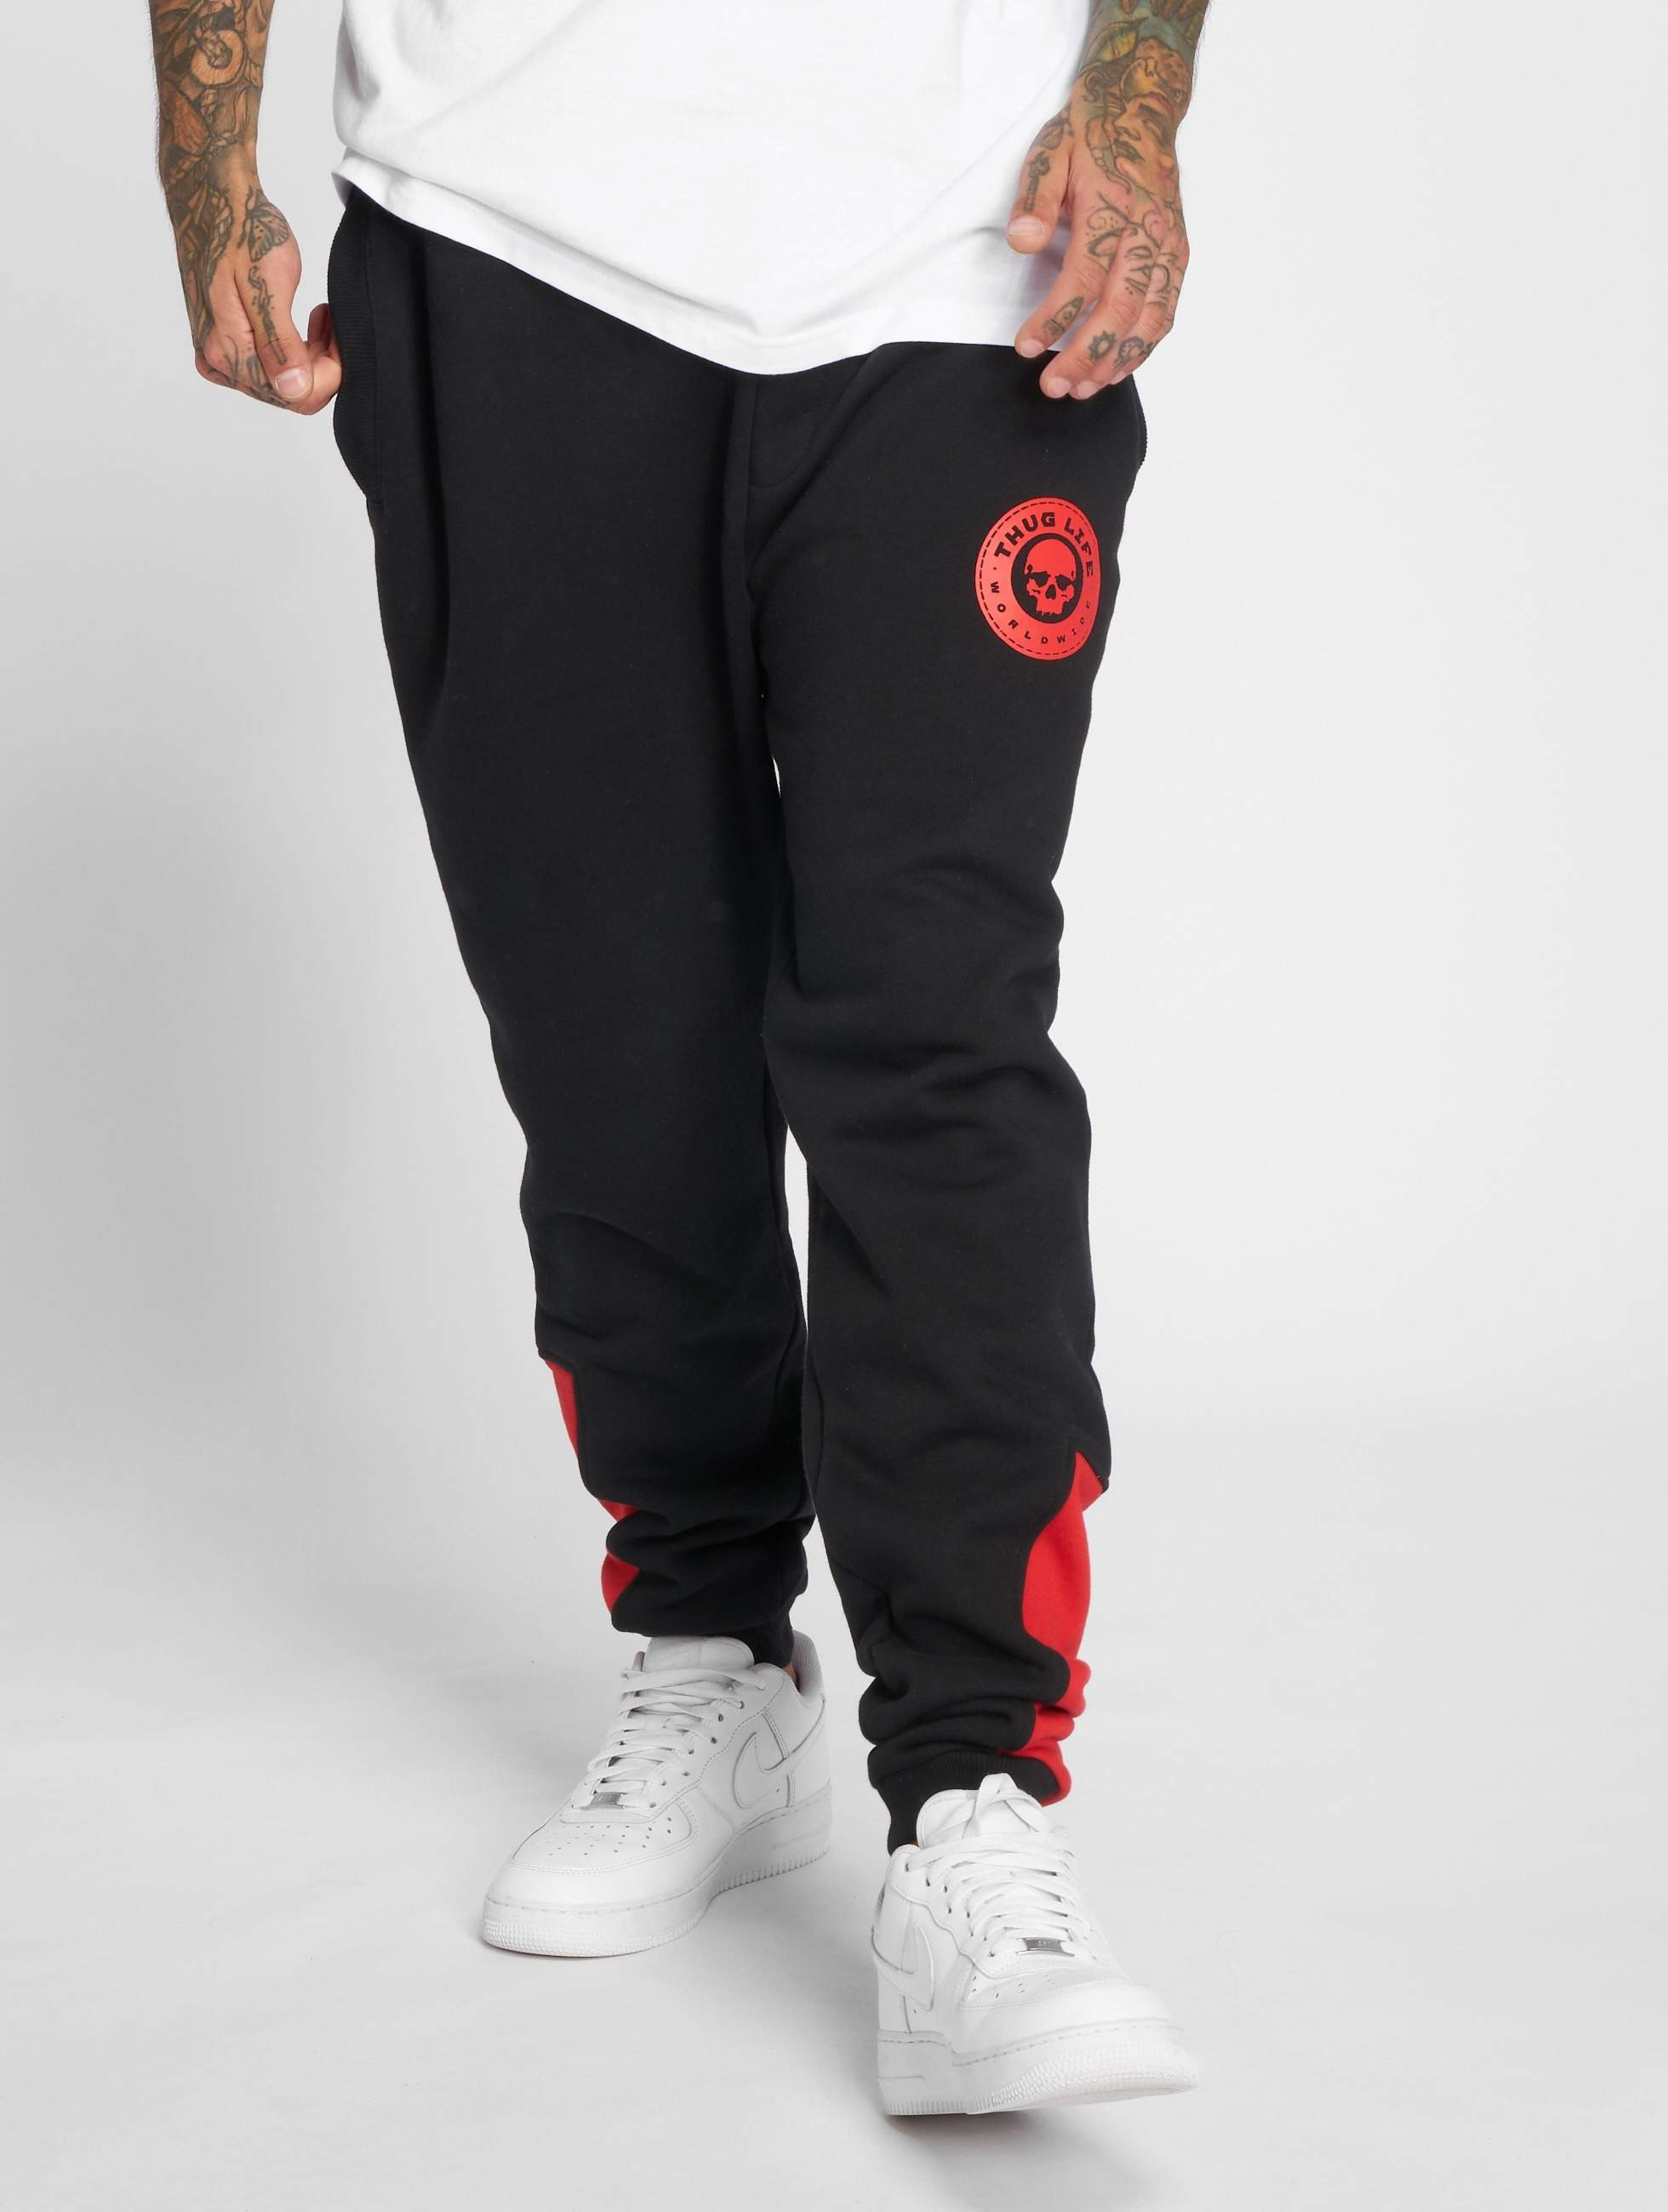 Thug Life / Sweat Pant Kvartas in black XL